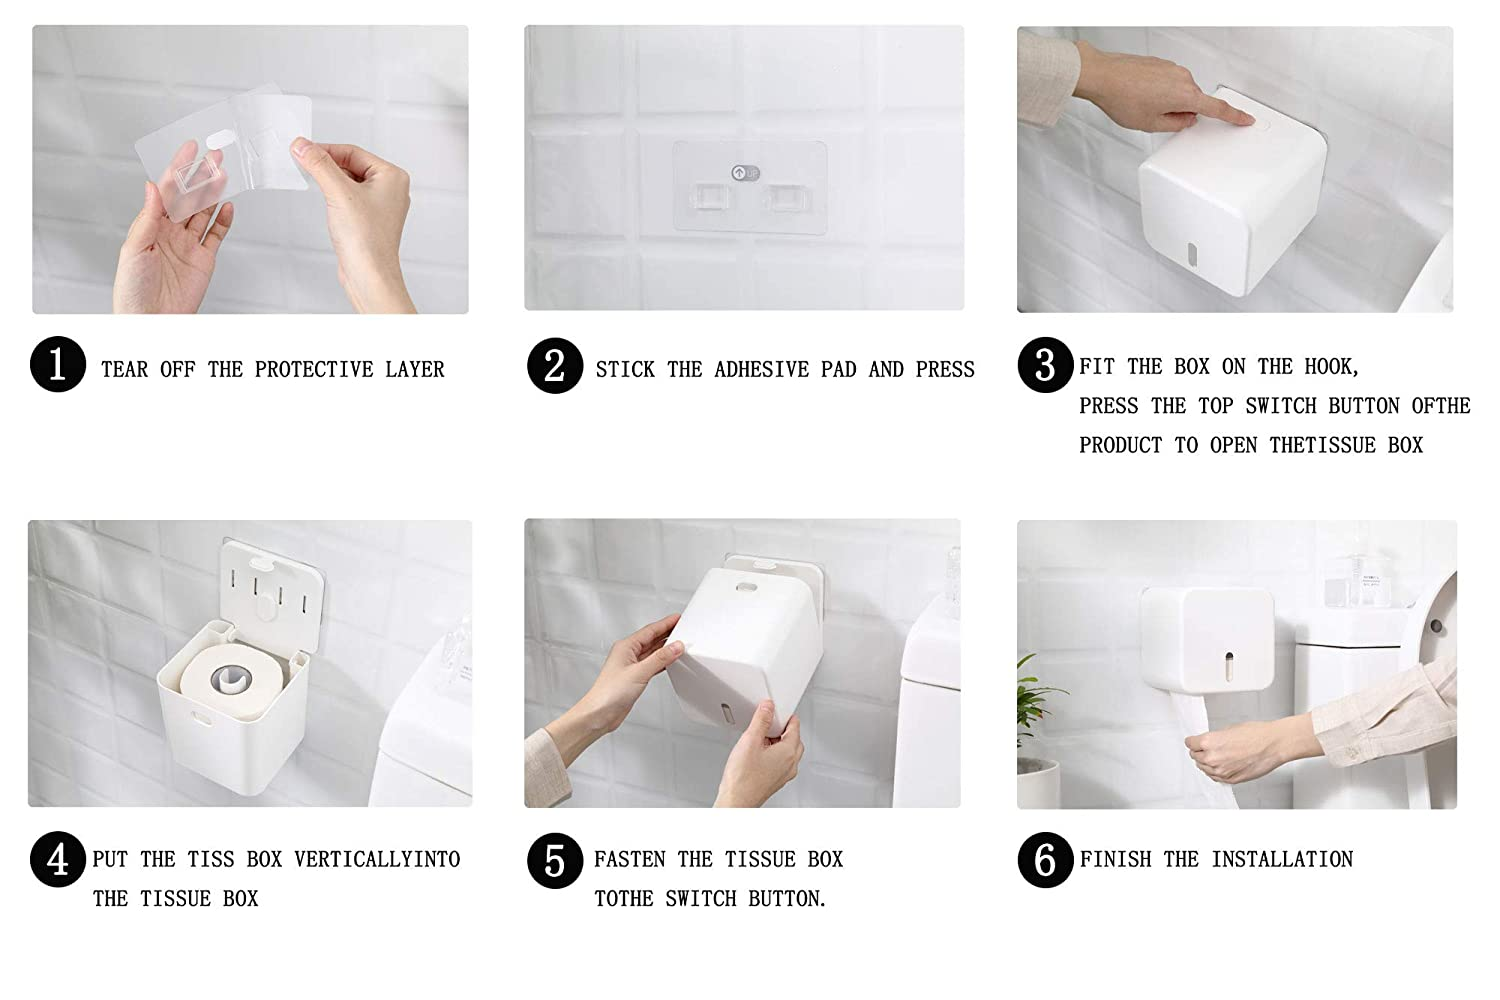 Toilet Paper Roll Holder Plastic Tissue Rolls Stand Dispenser Wall Mounted Self Adhesive Without Drilling Waterproof Dustproof for Bathroom Kitchen White